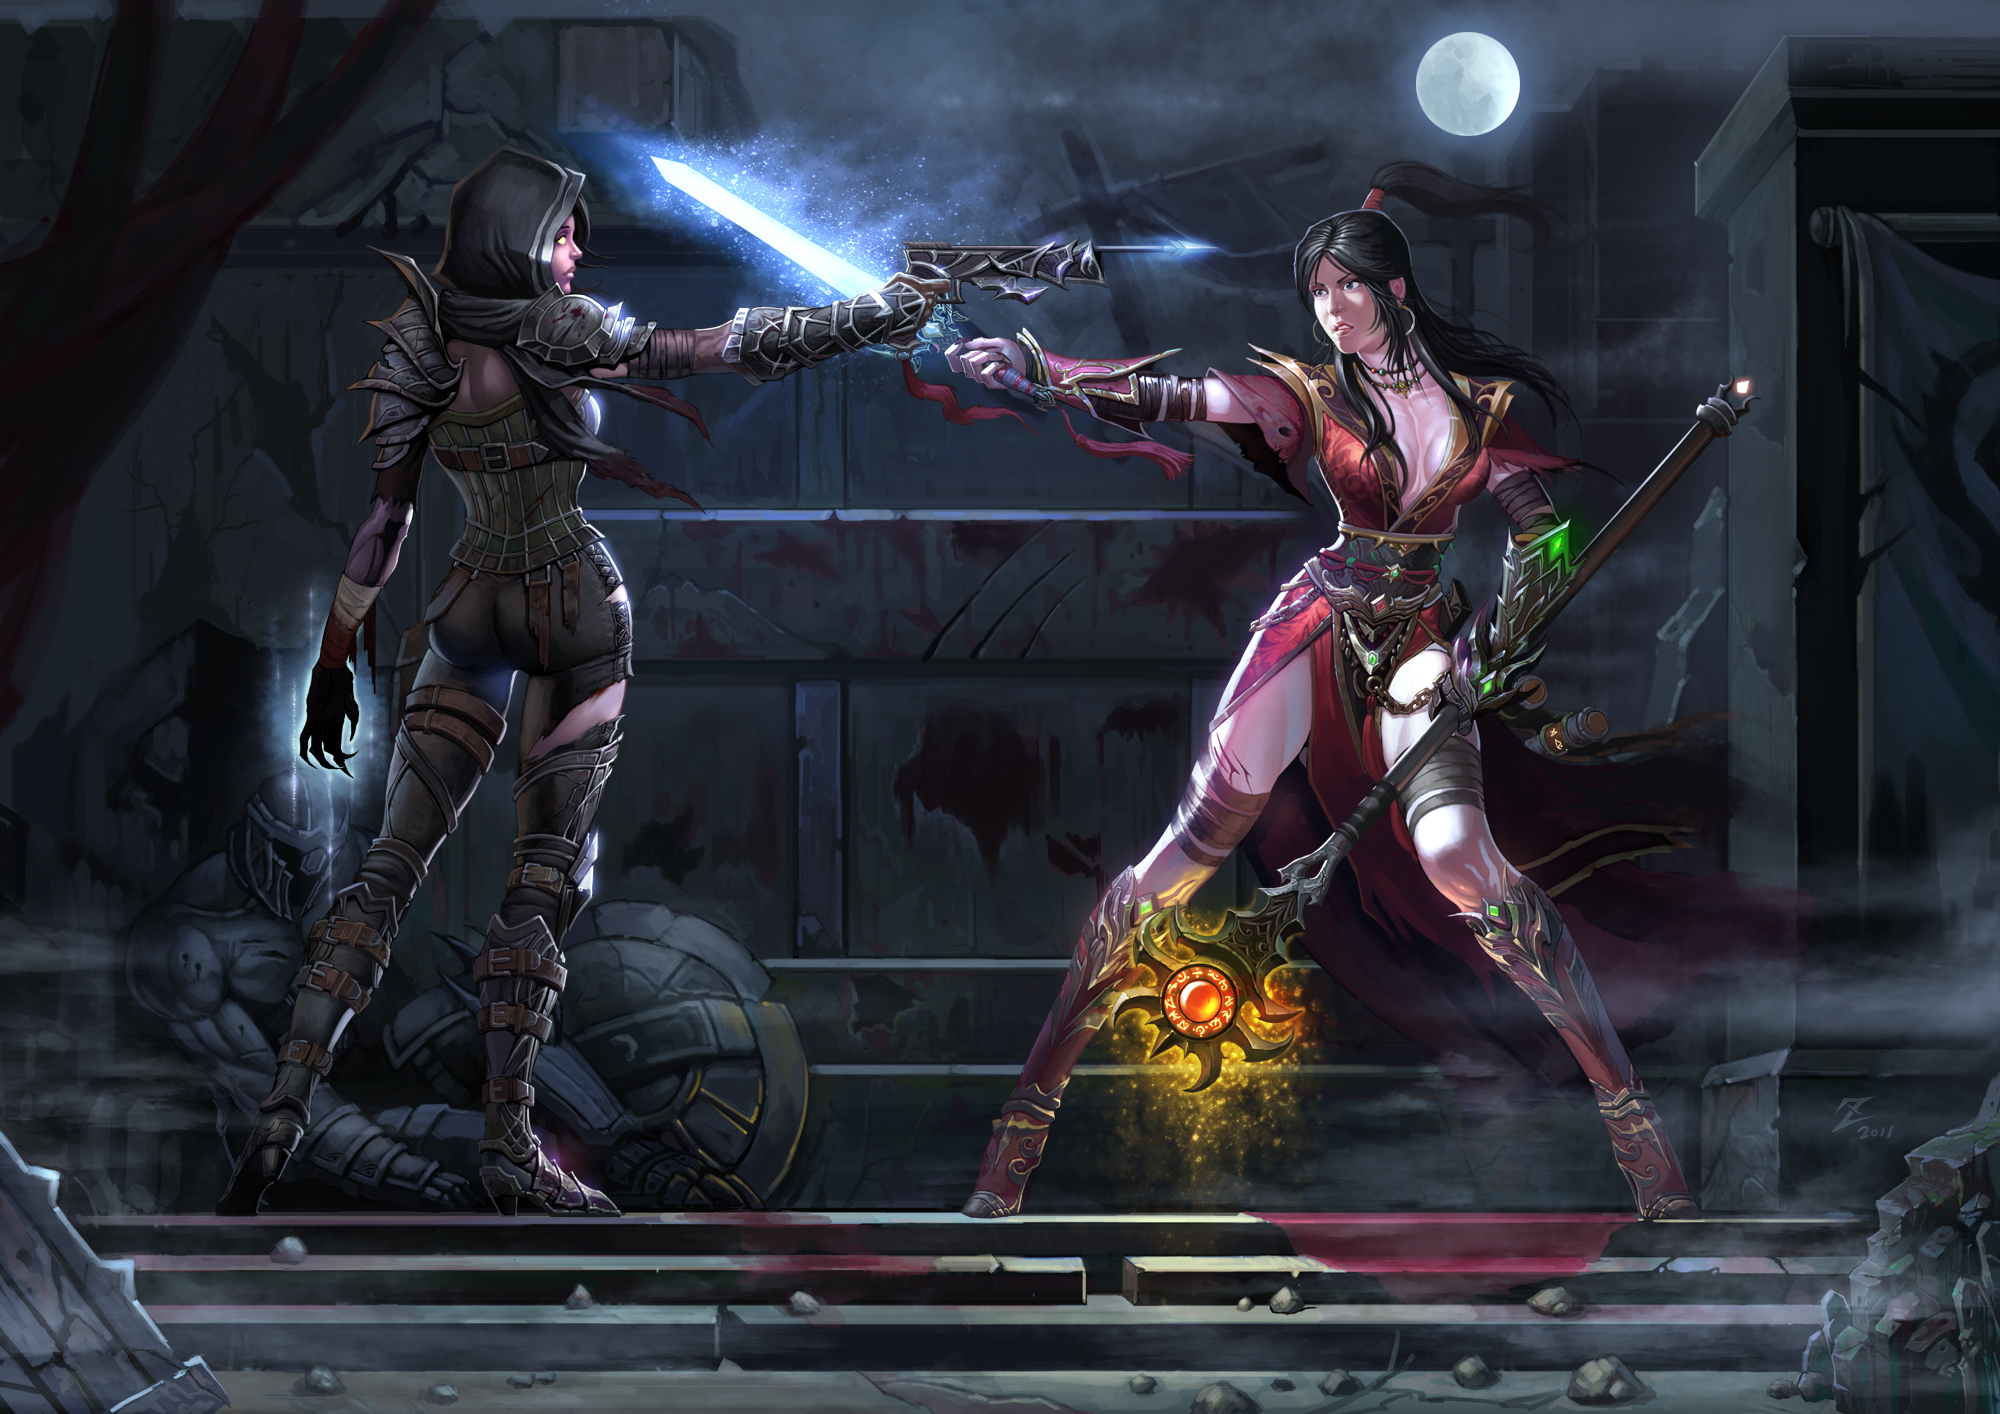 Female armor, Diablo 3 and Mary sue on Pinterest